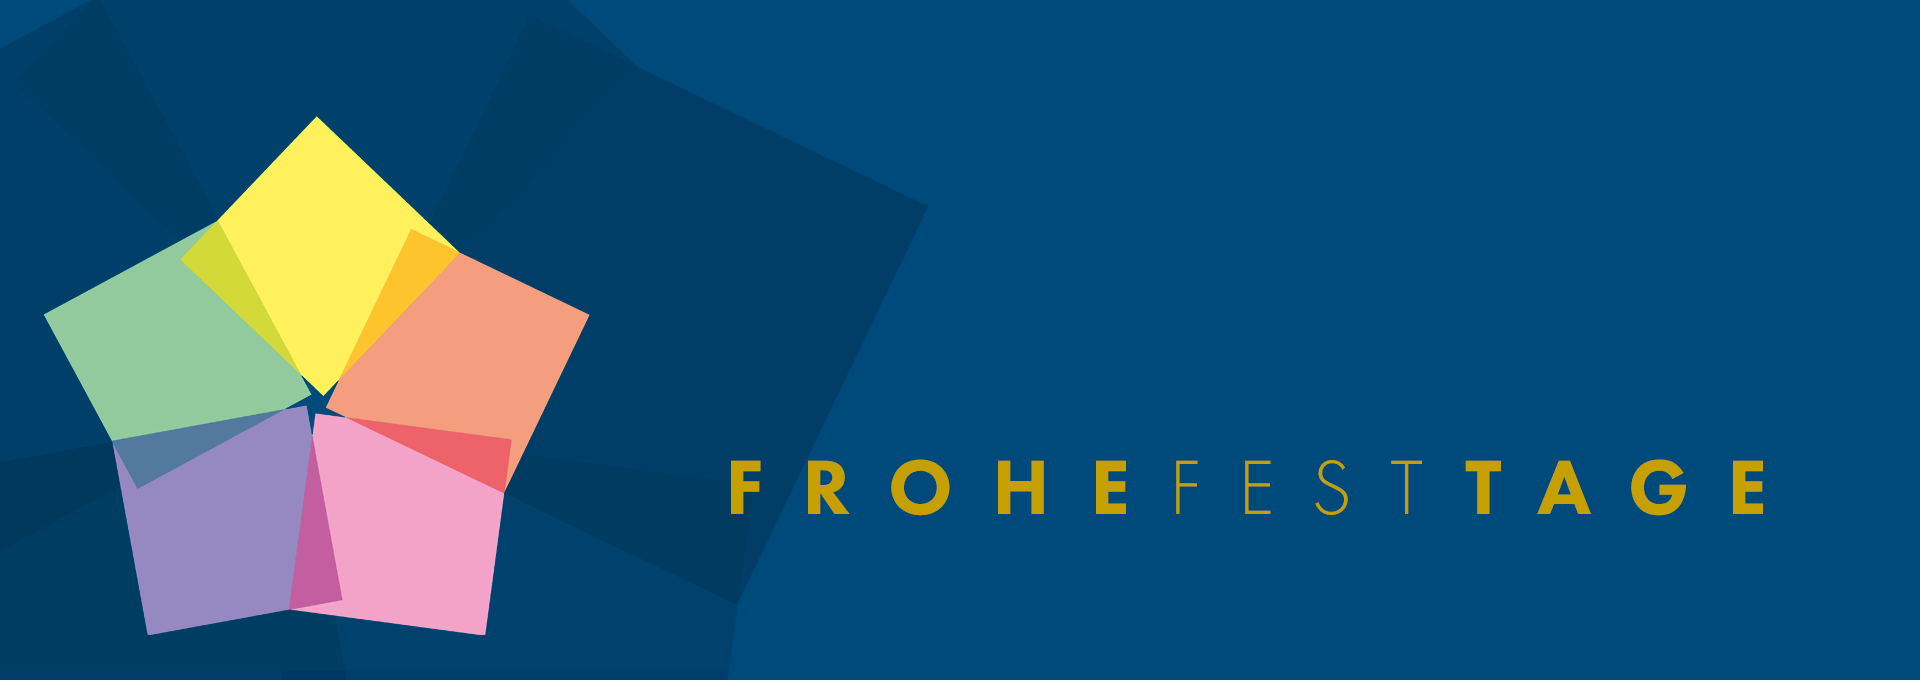 Frohe Festtage | Spielereien mit Pantone Color of the Year 2020